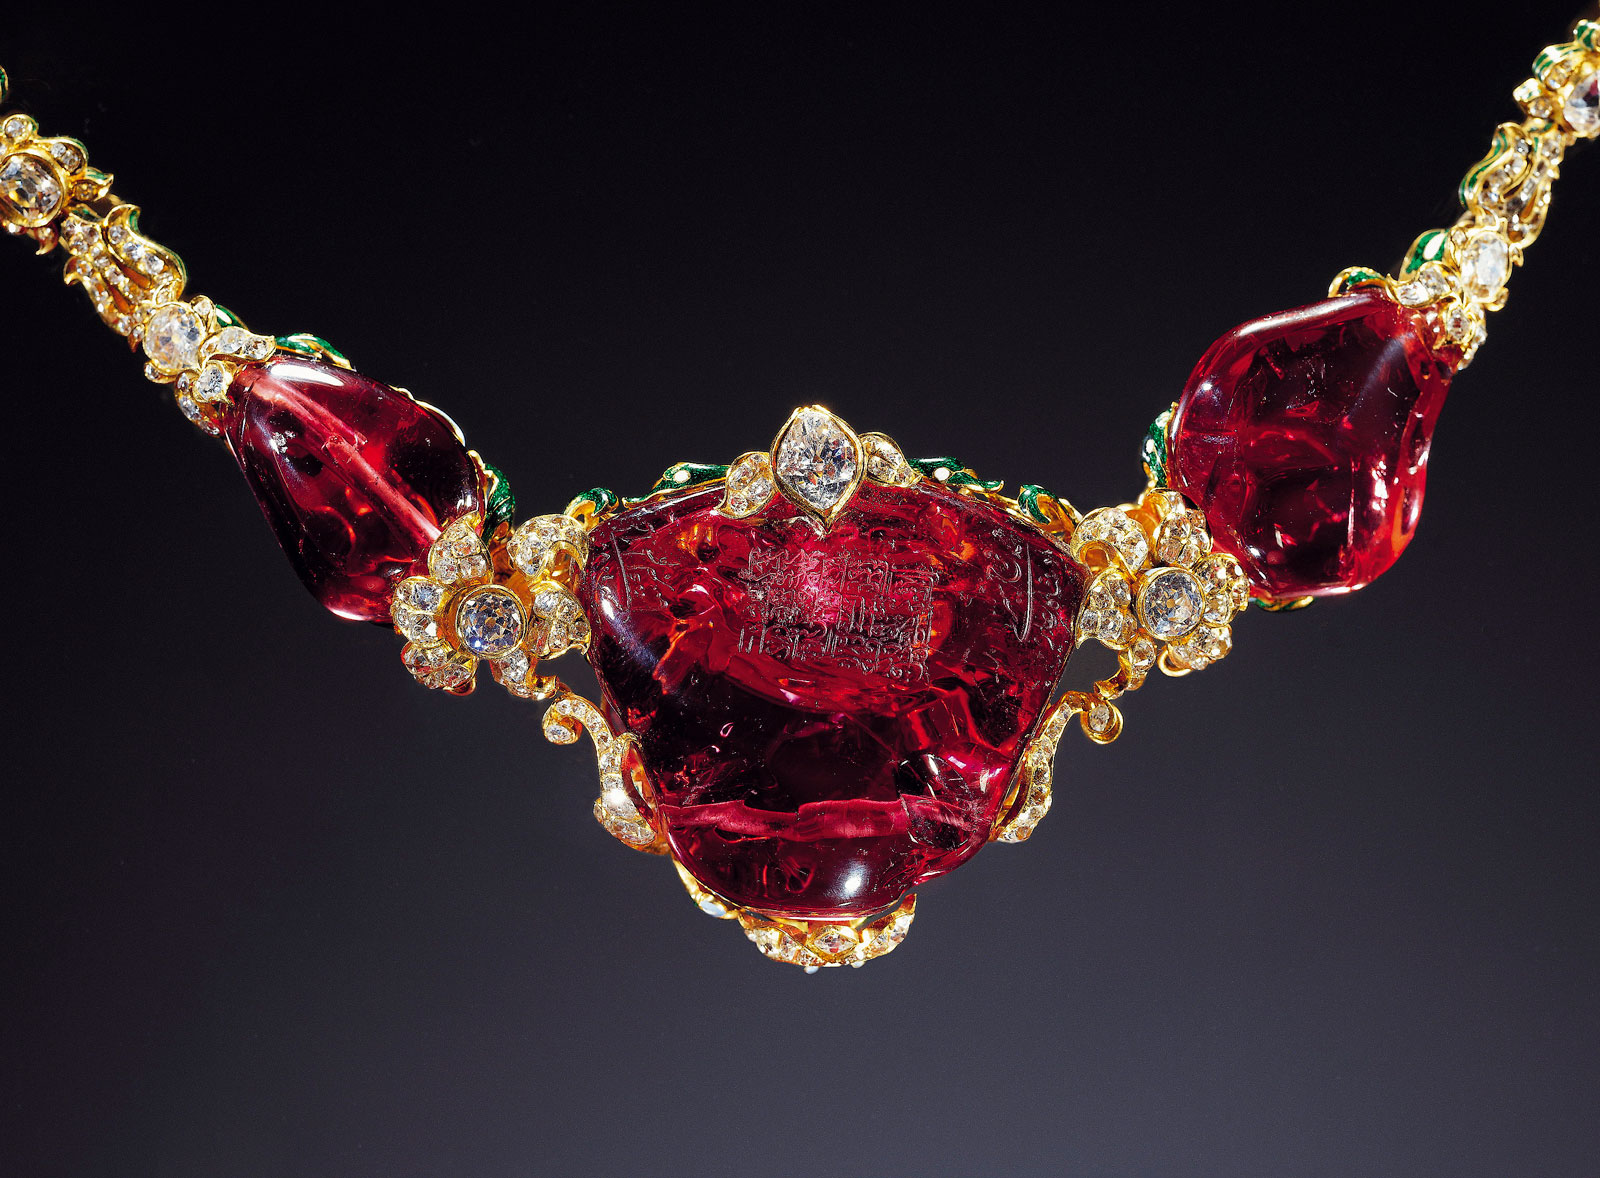 The Timur Ruby. Currently in the private collection of the British Queen, the idea that it was once in the possession of Timur has now been debunked (Stronge, 1996).